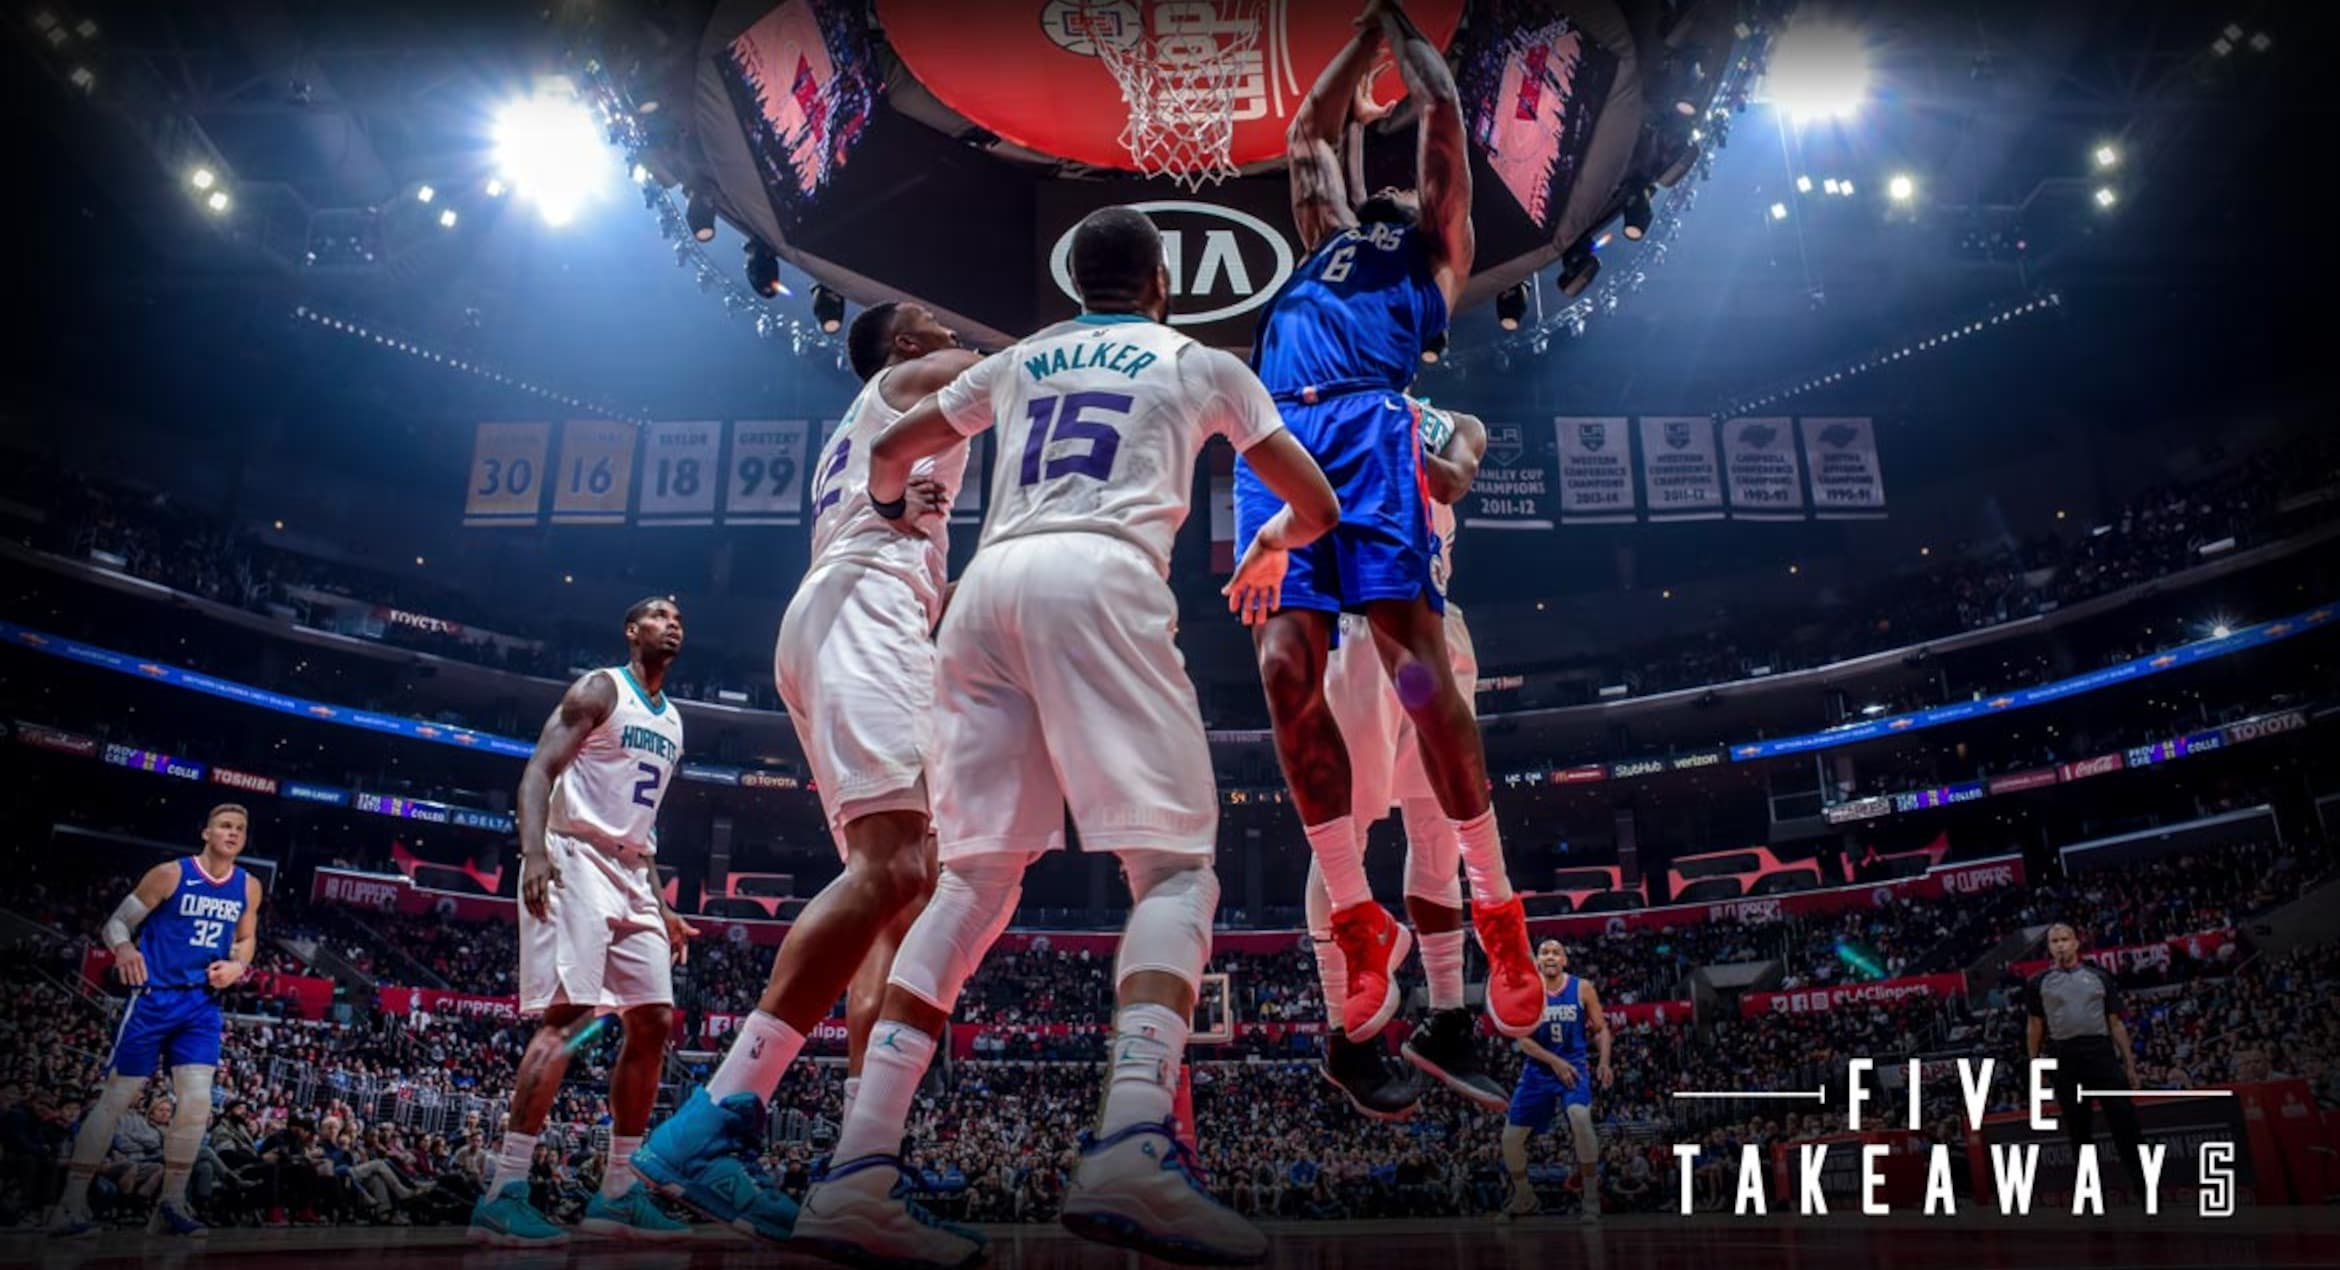 Five Takeaways: Williams Propels Clippers into 2018 with Victory